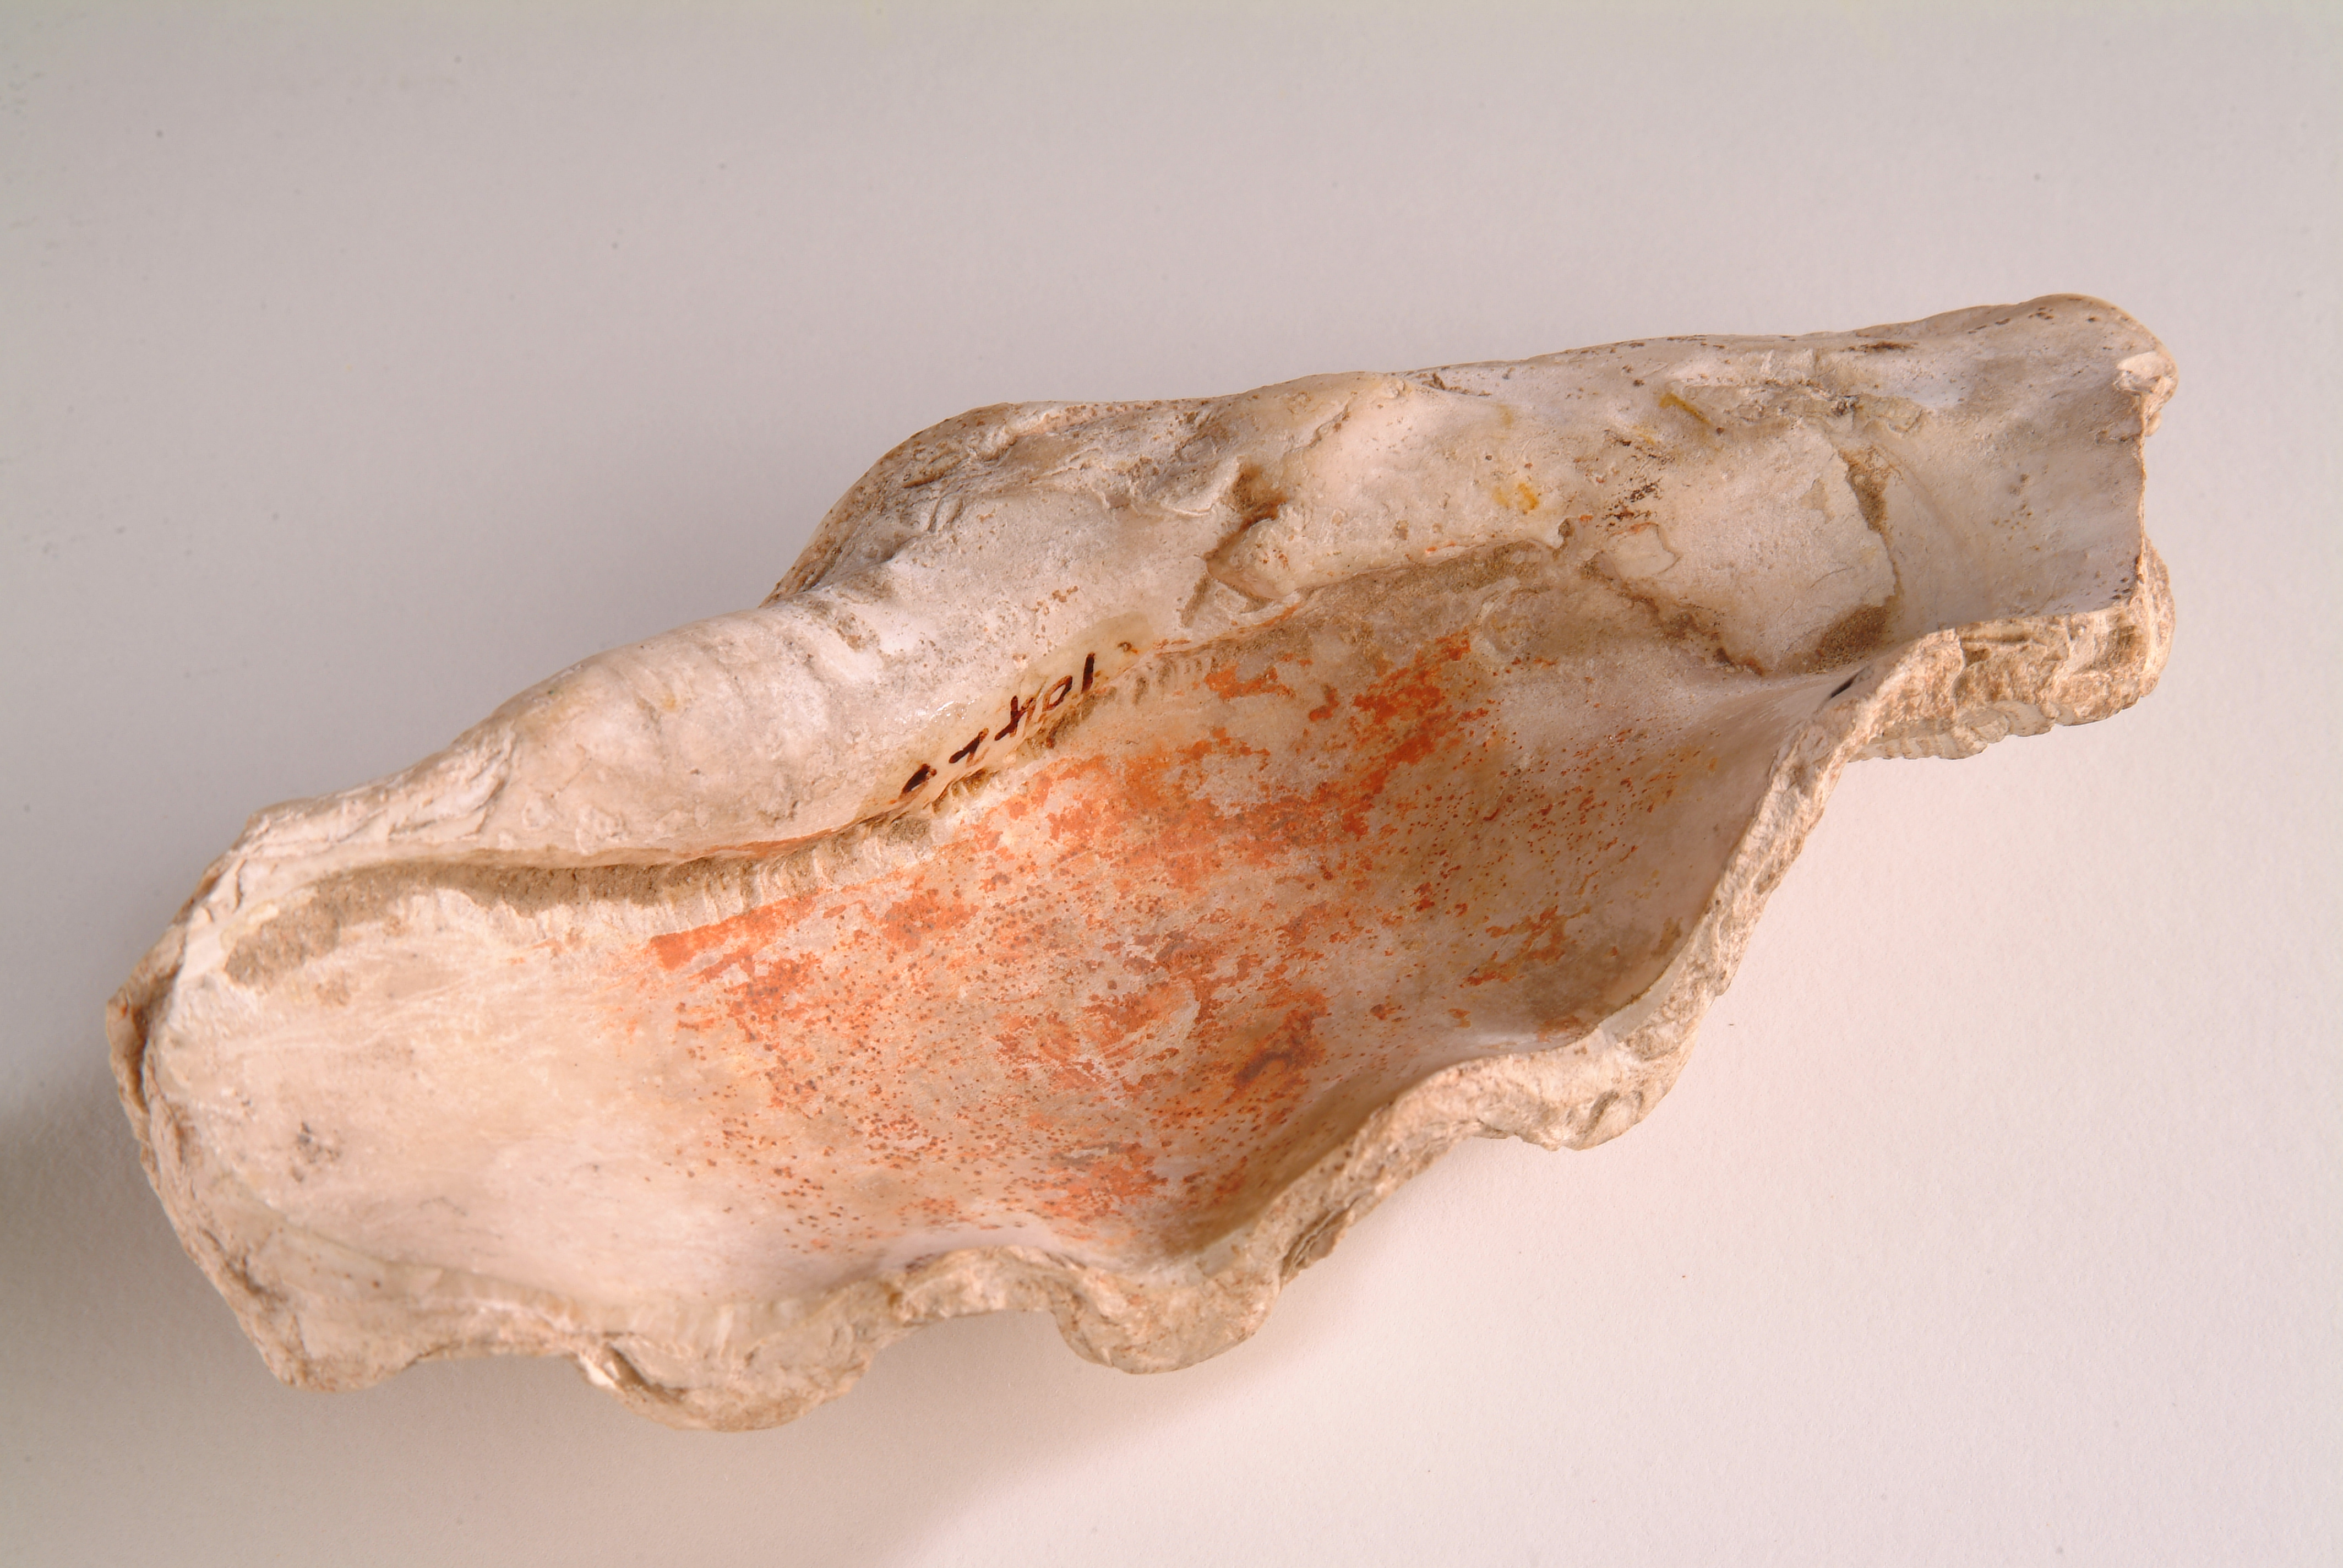 Colour photograph of a shell with rust coloured staining inside